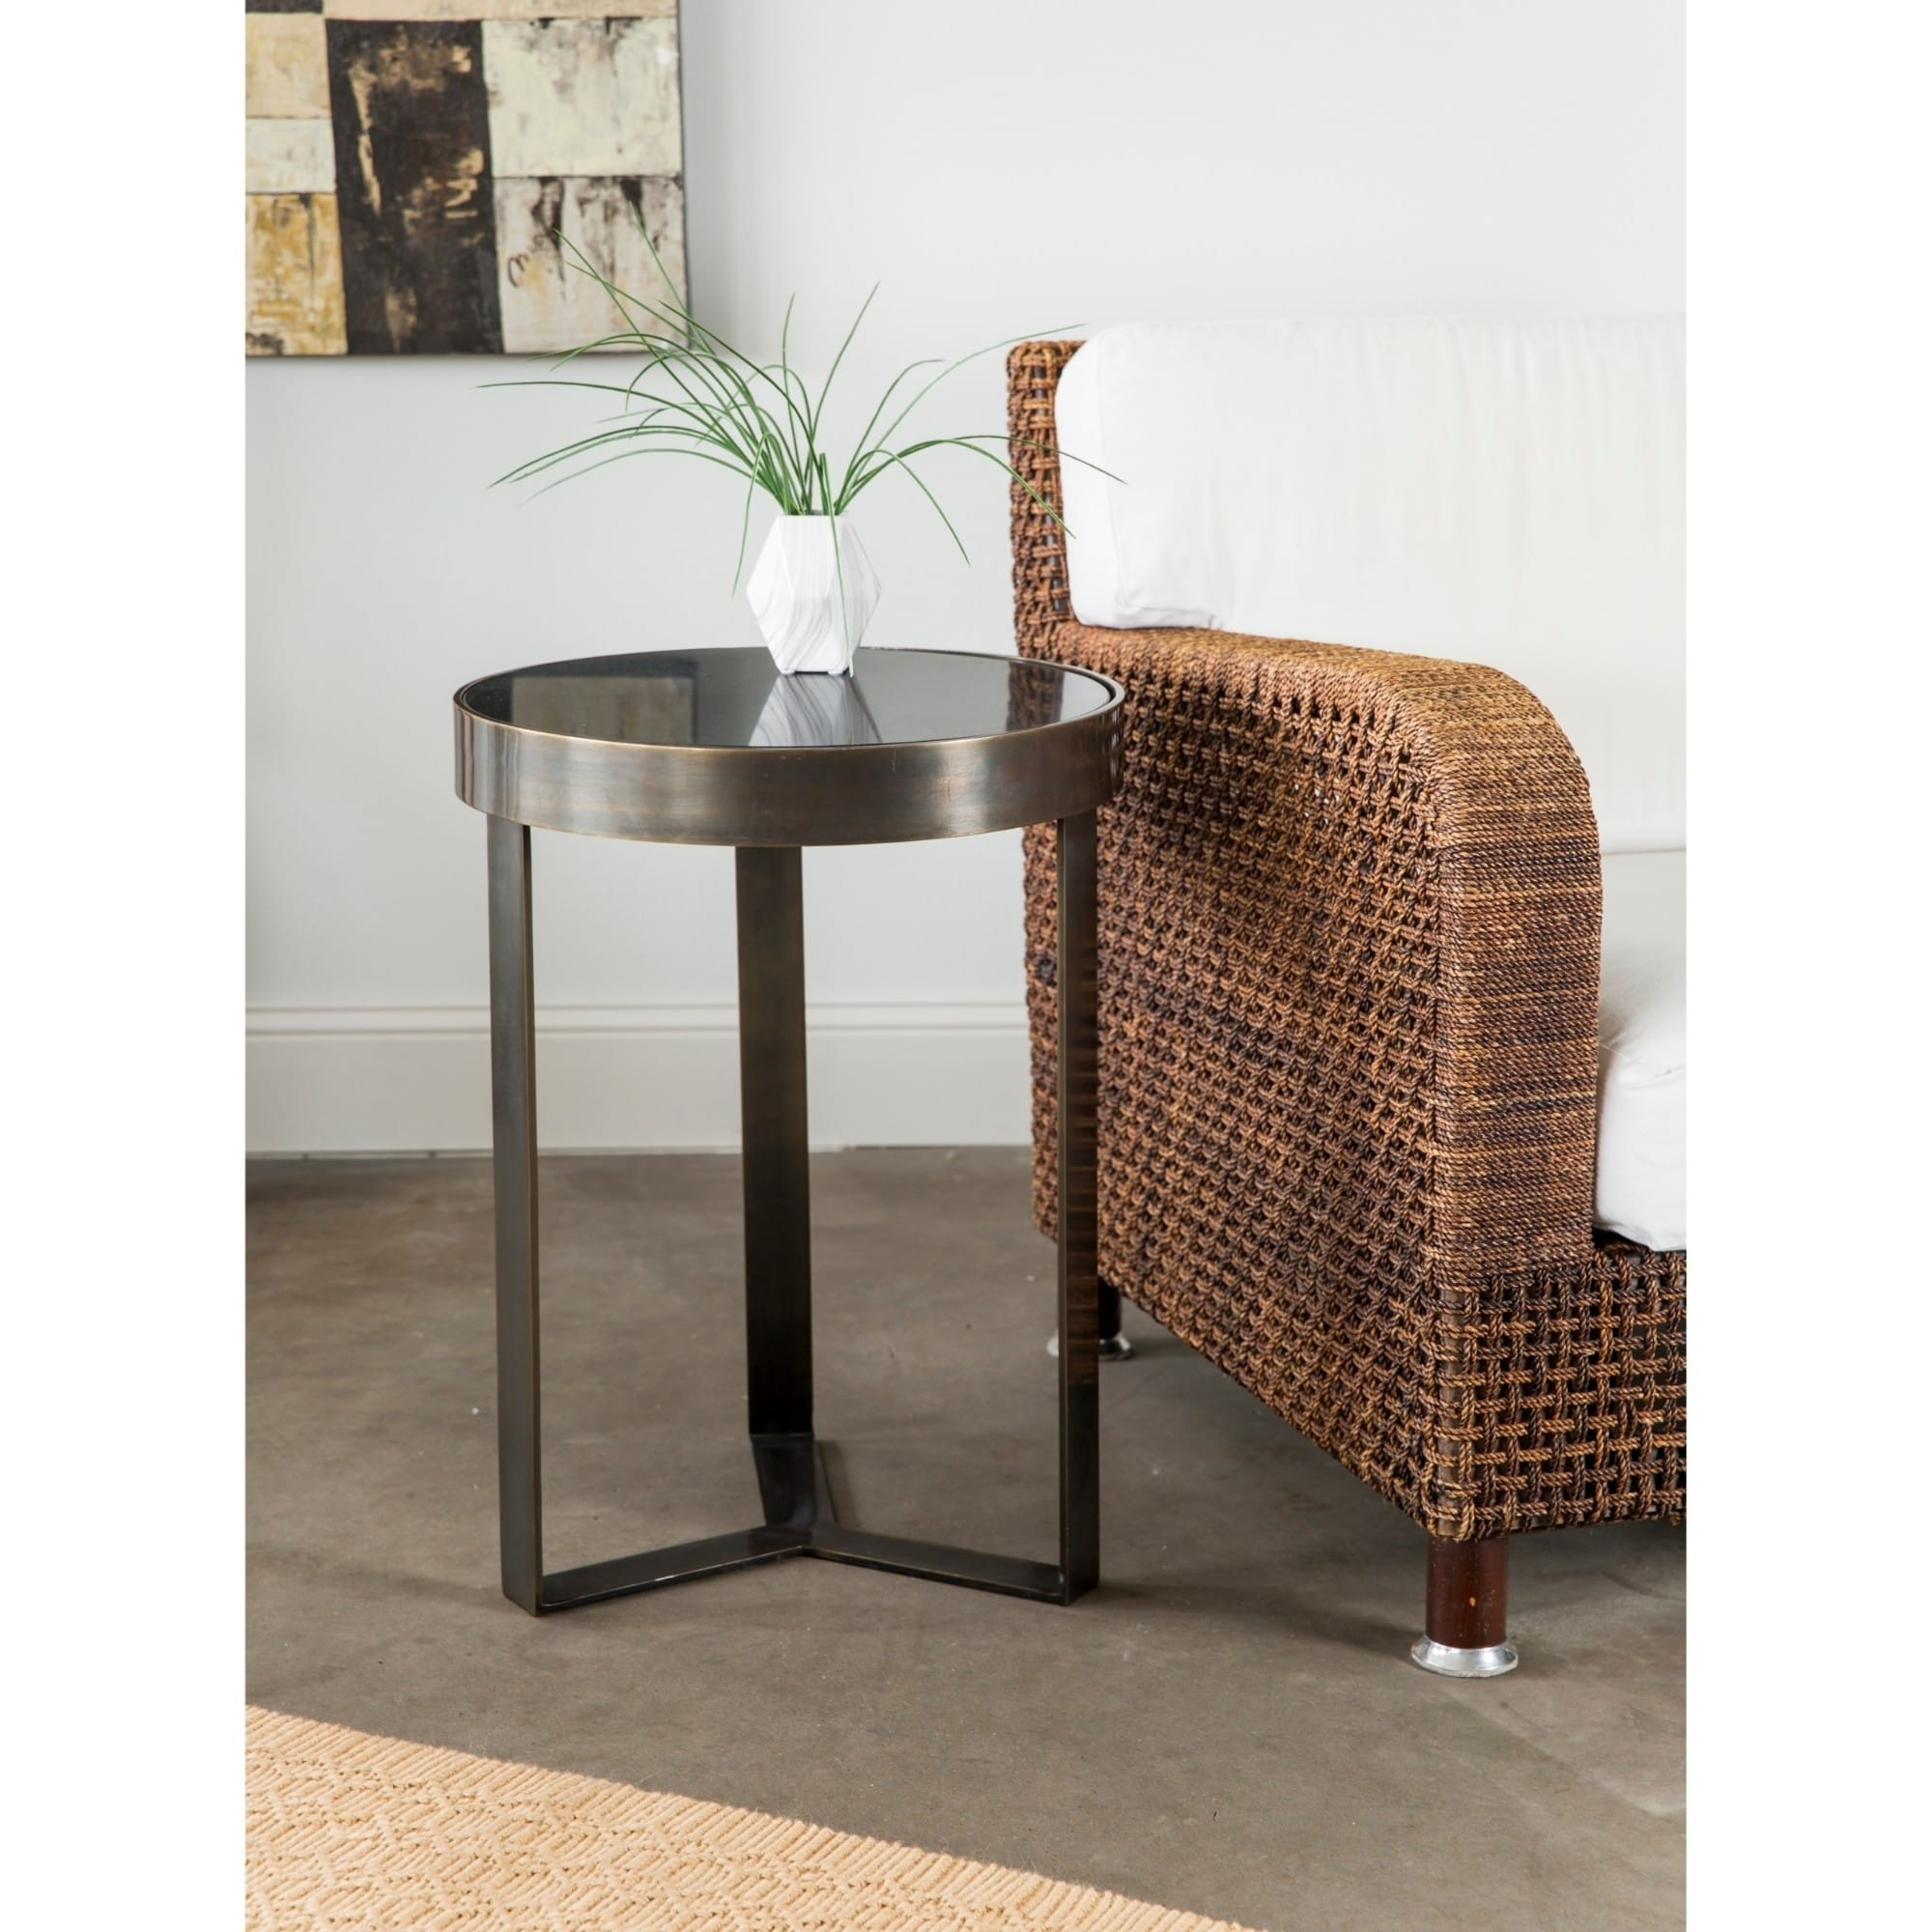 contemporary mini metal and stone side table free end tables coffee with storage small behind sofa magnolia home kids dark brown leather furniture decorating ideas round glass